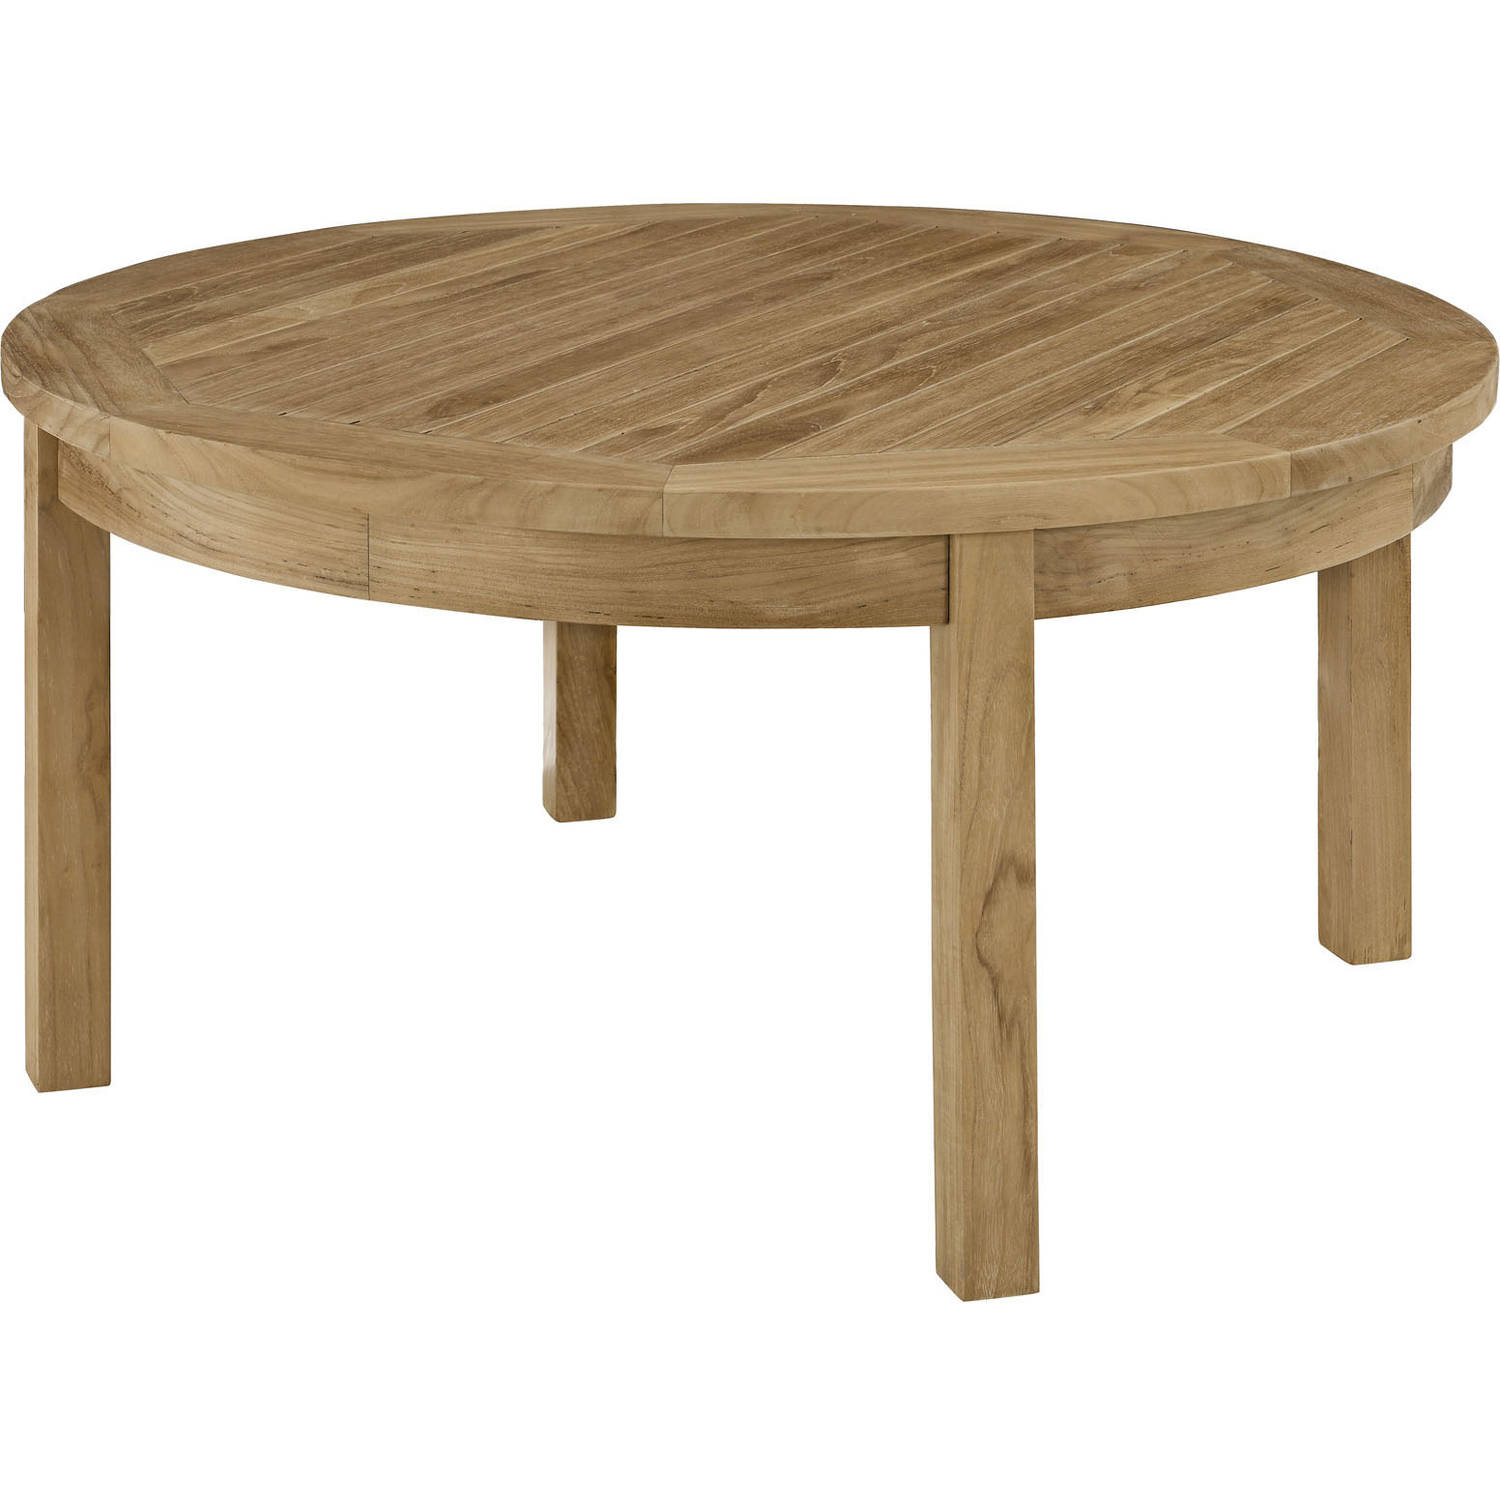 Modway Marina Outdoor Patio Teak Round Coffee Table, Natural by Modway